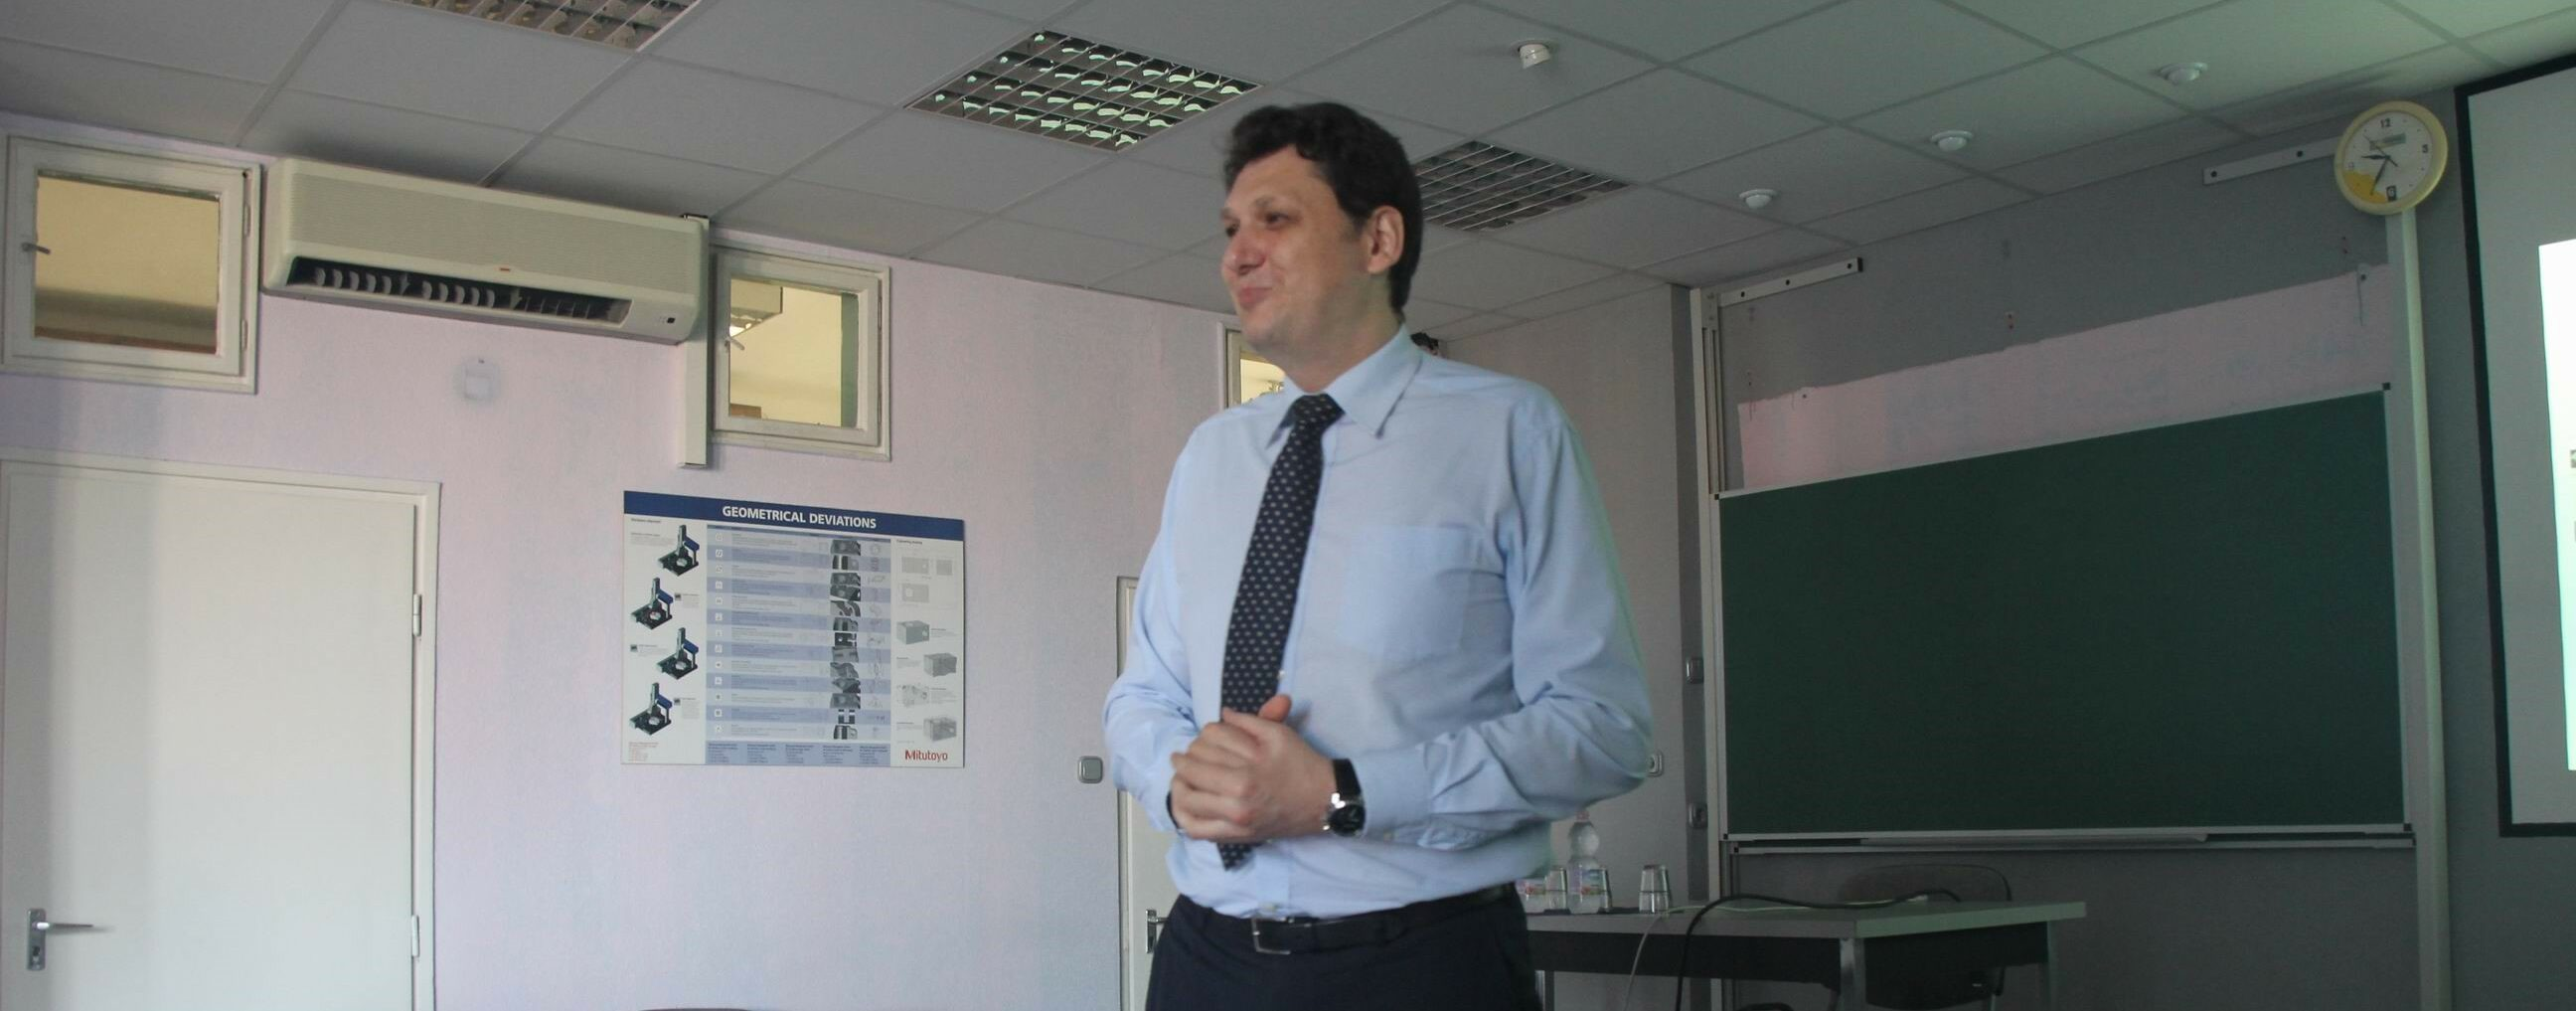 Our former student Vladimir Serebrenny was appointed as the rector of the Moscow State Technological University STANKIN